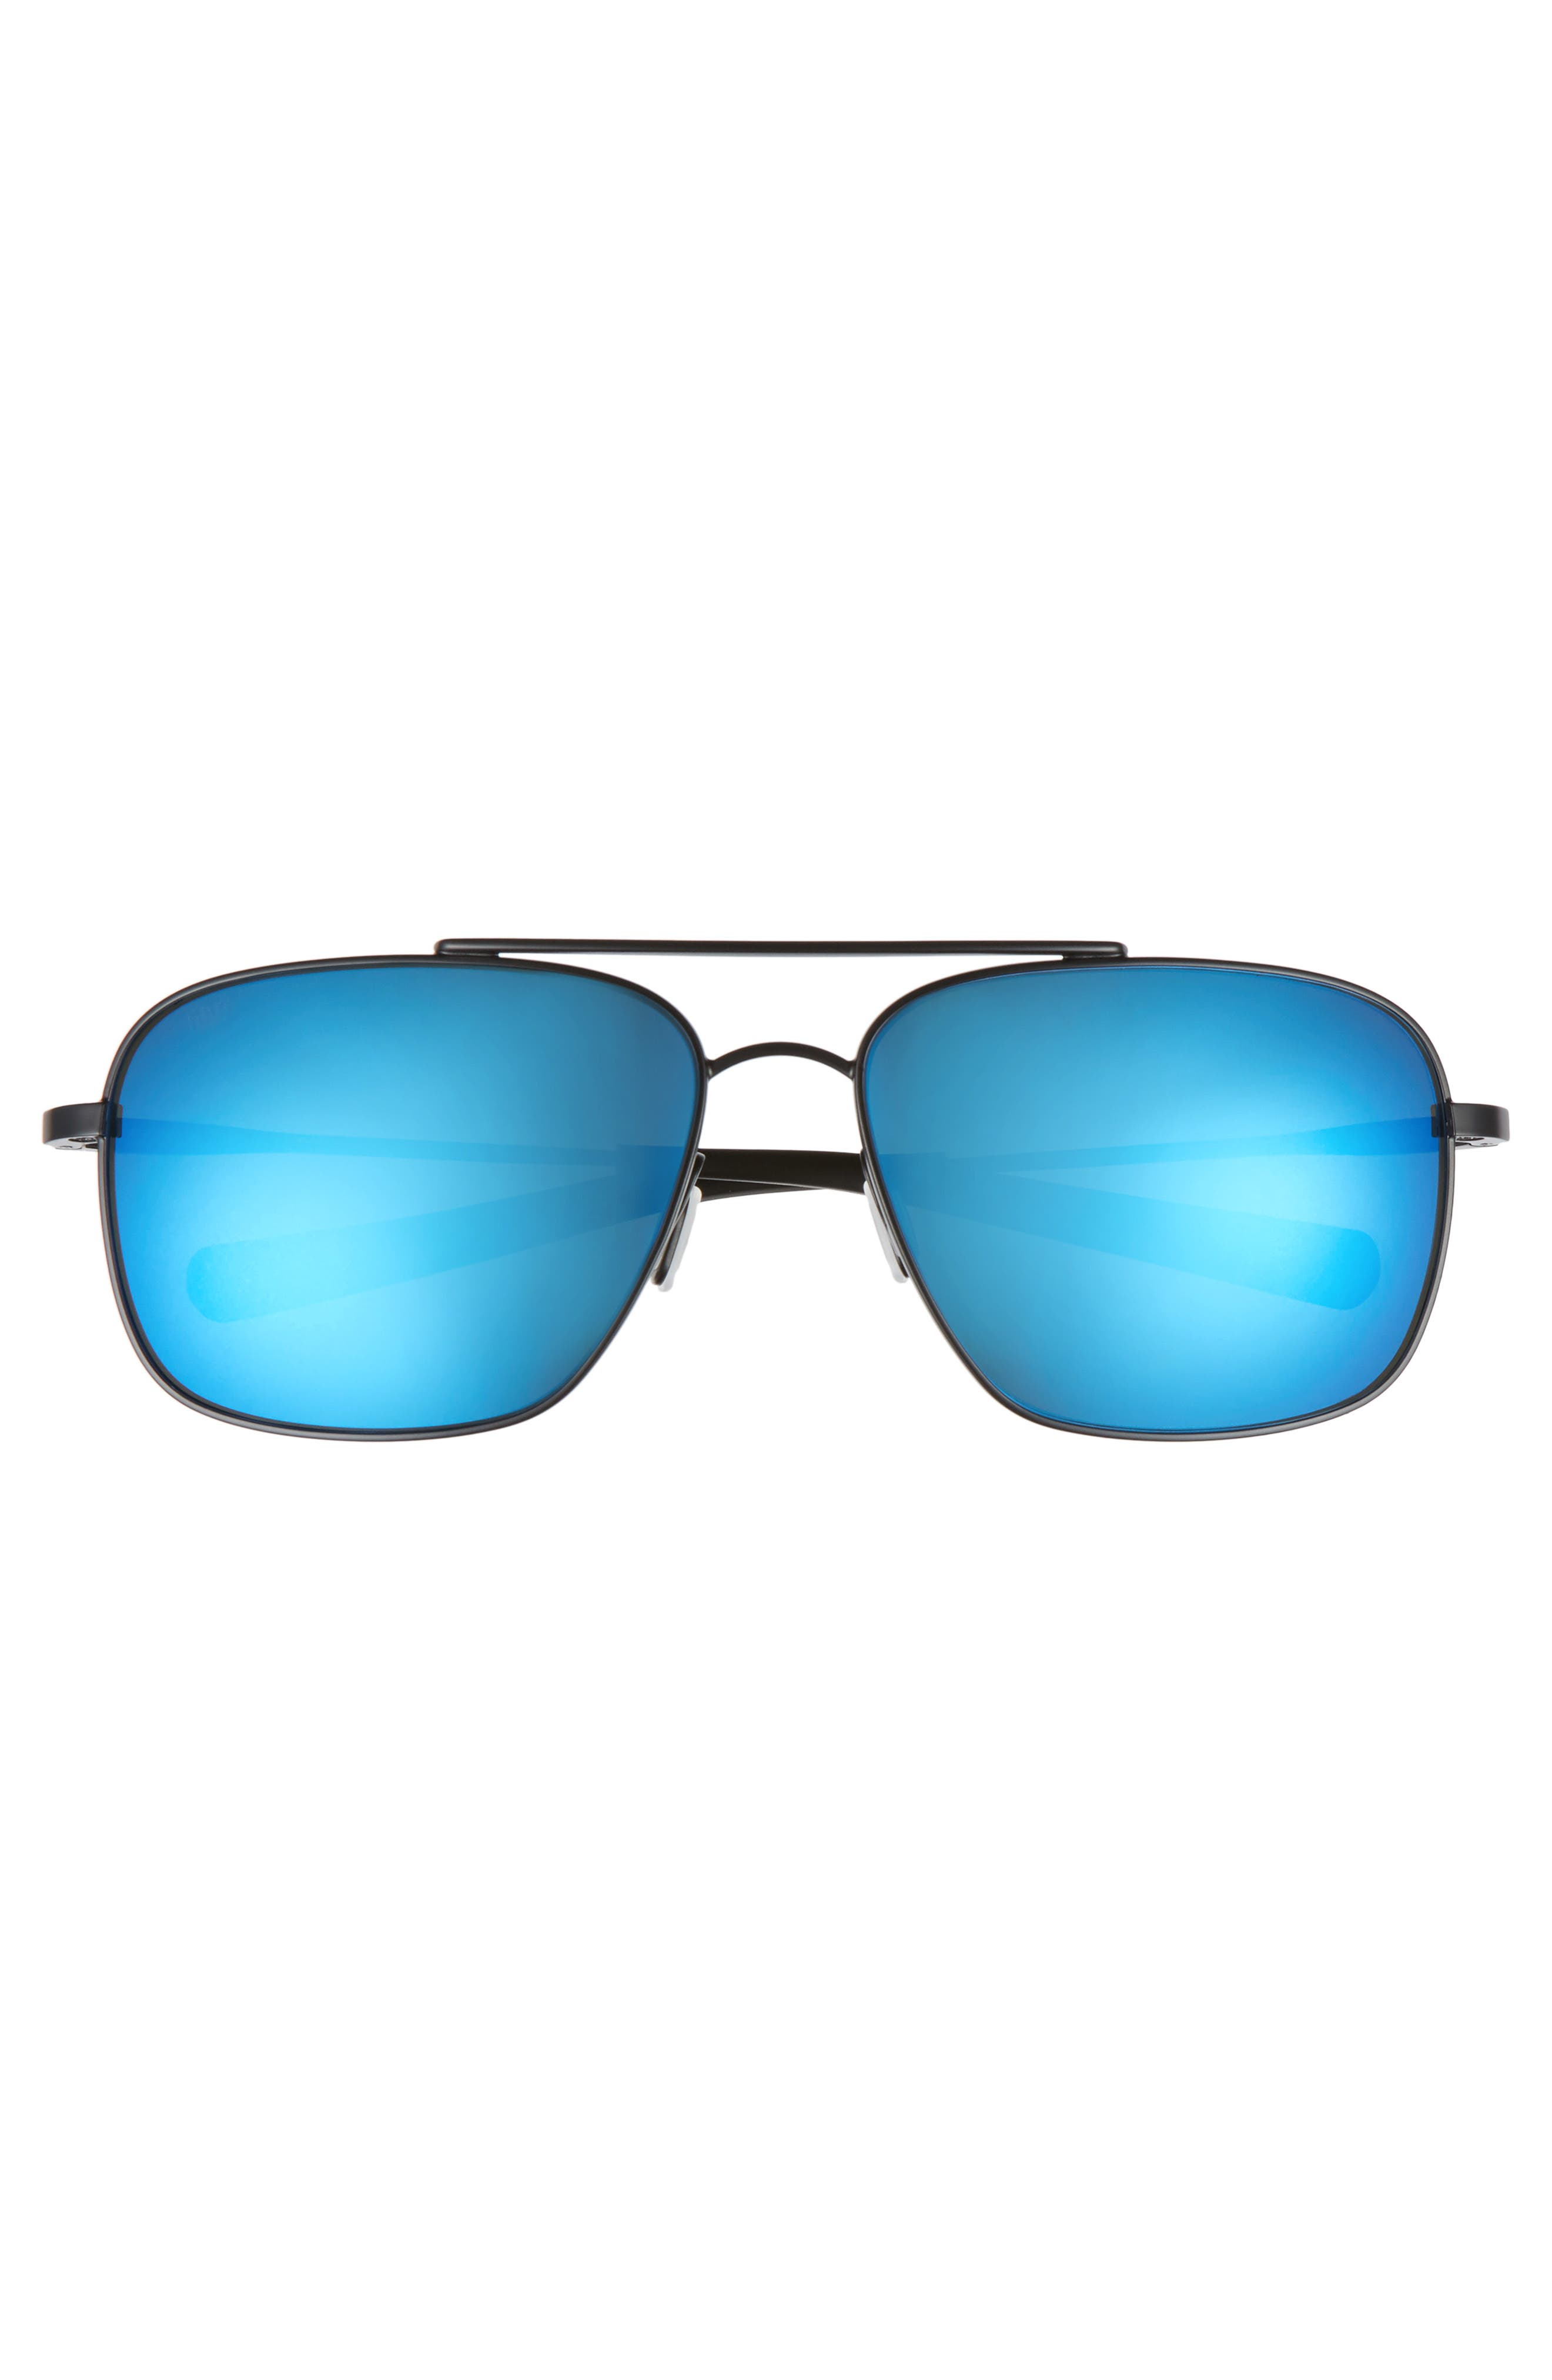 Canaveral 60mm Polarized Sunglasses,                             Alternate thumbnail 2, color,                             Satin Black/ Blue Mirror